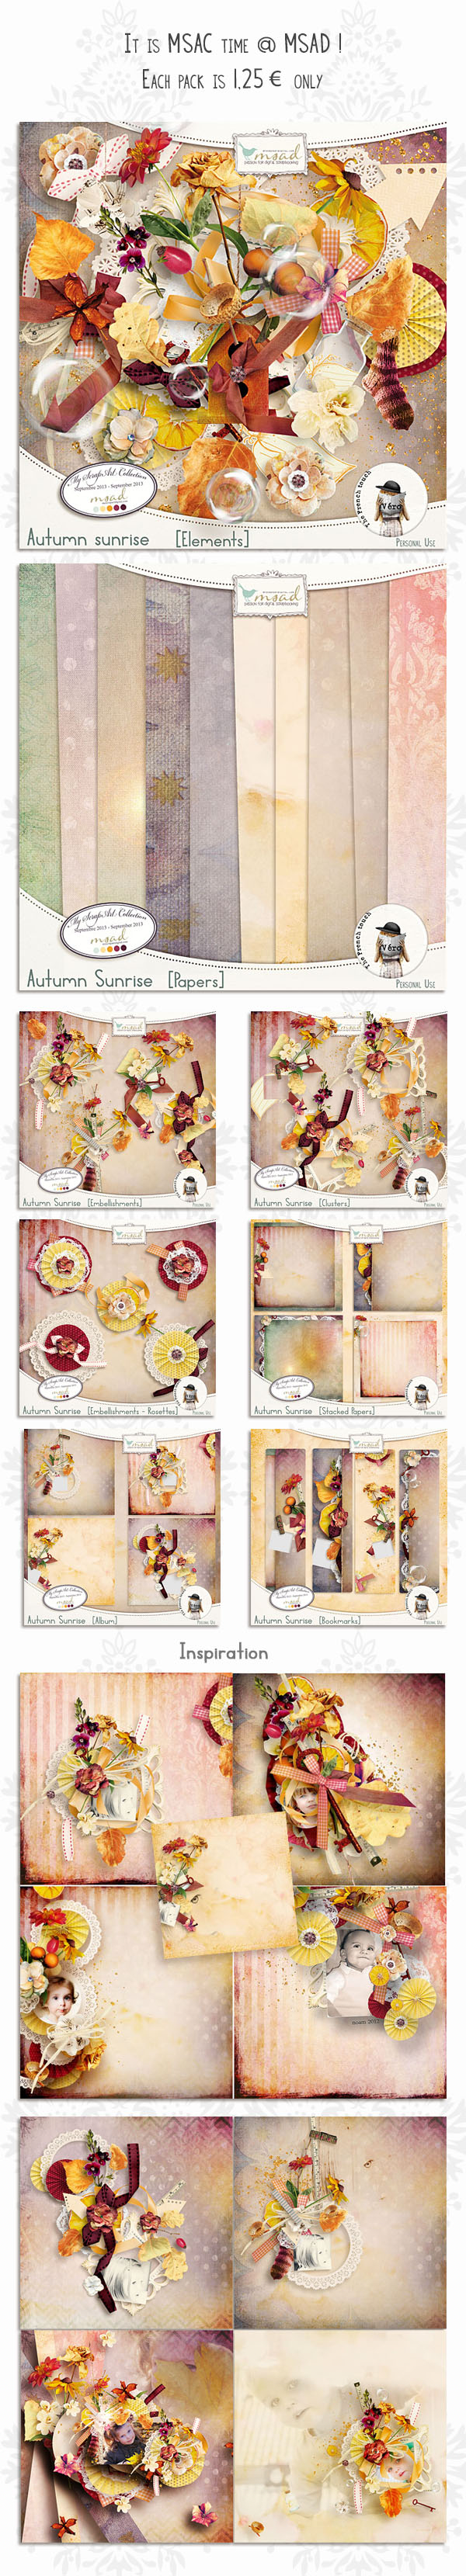 Véro - MAJ 02/03/17 - Spring has sprung ...  - $1 per pack  - Page 7 510080PromoNL